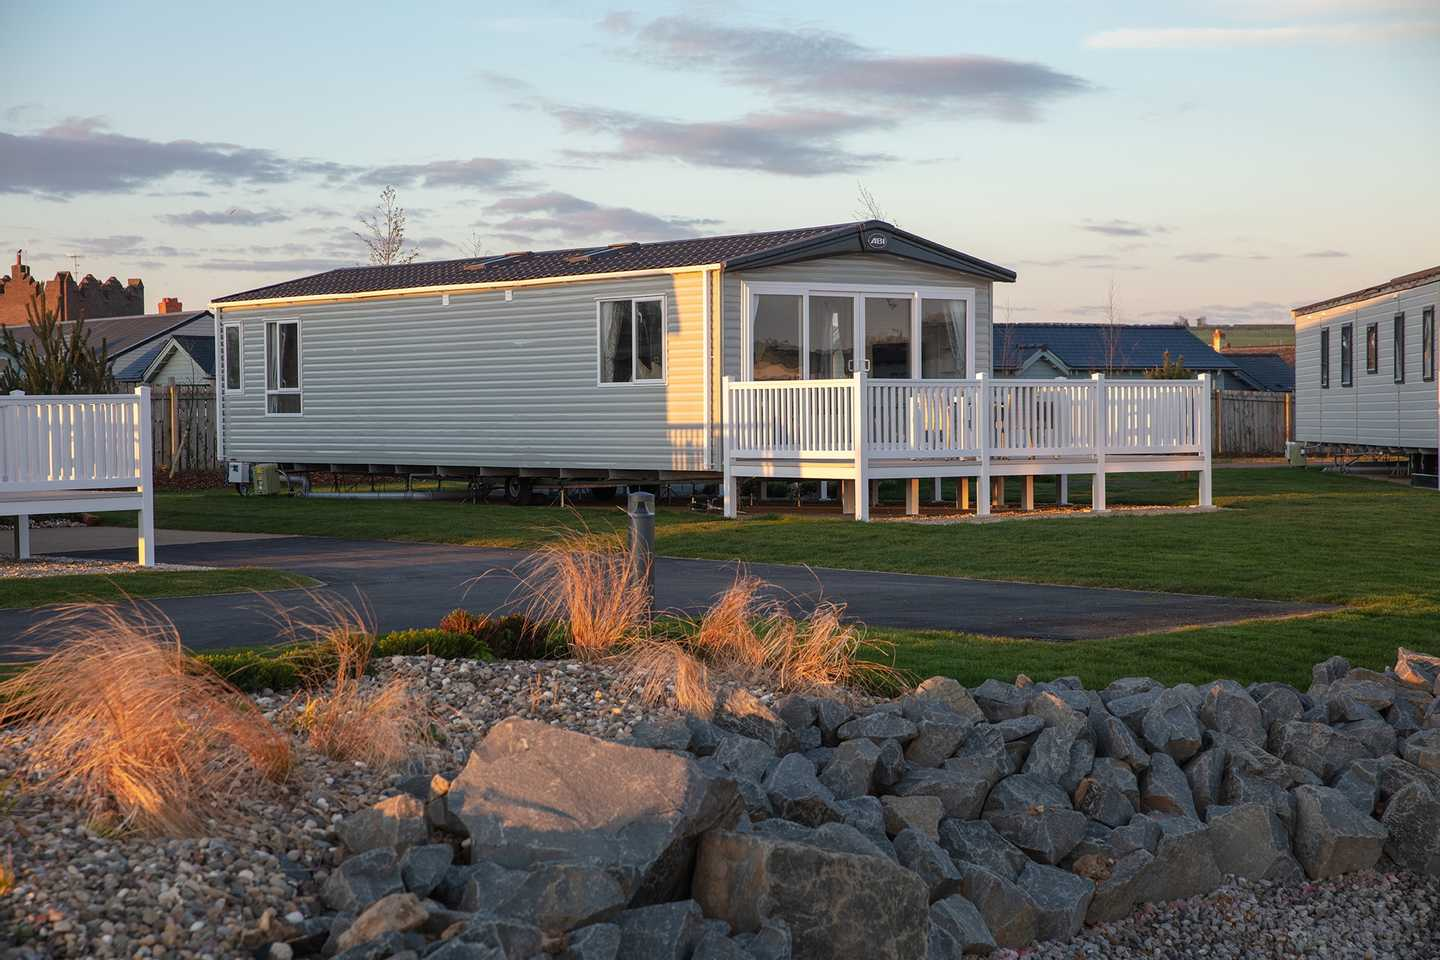 Enjoy the sunset in your new holiday home